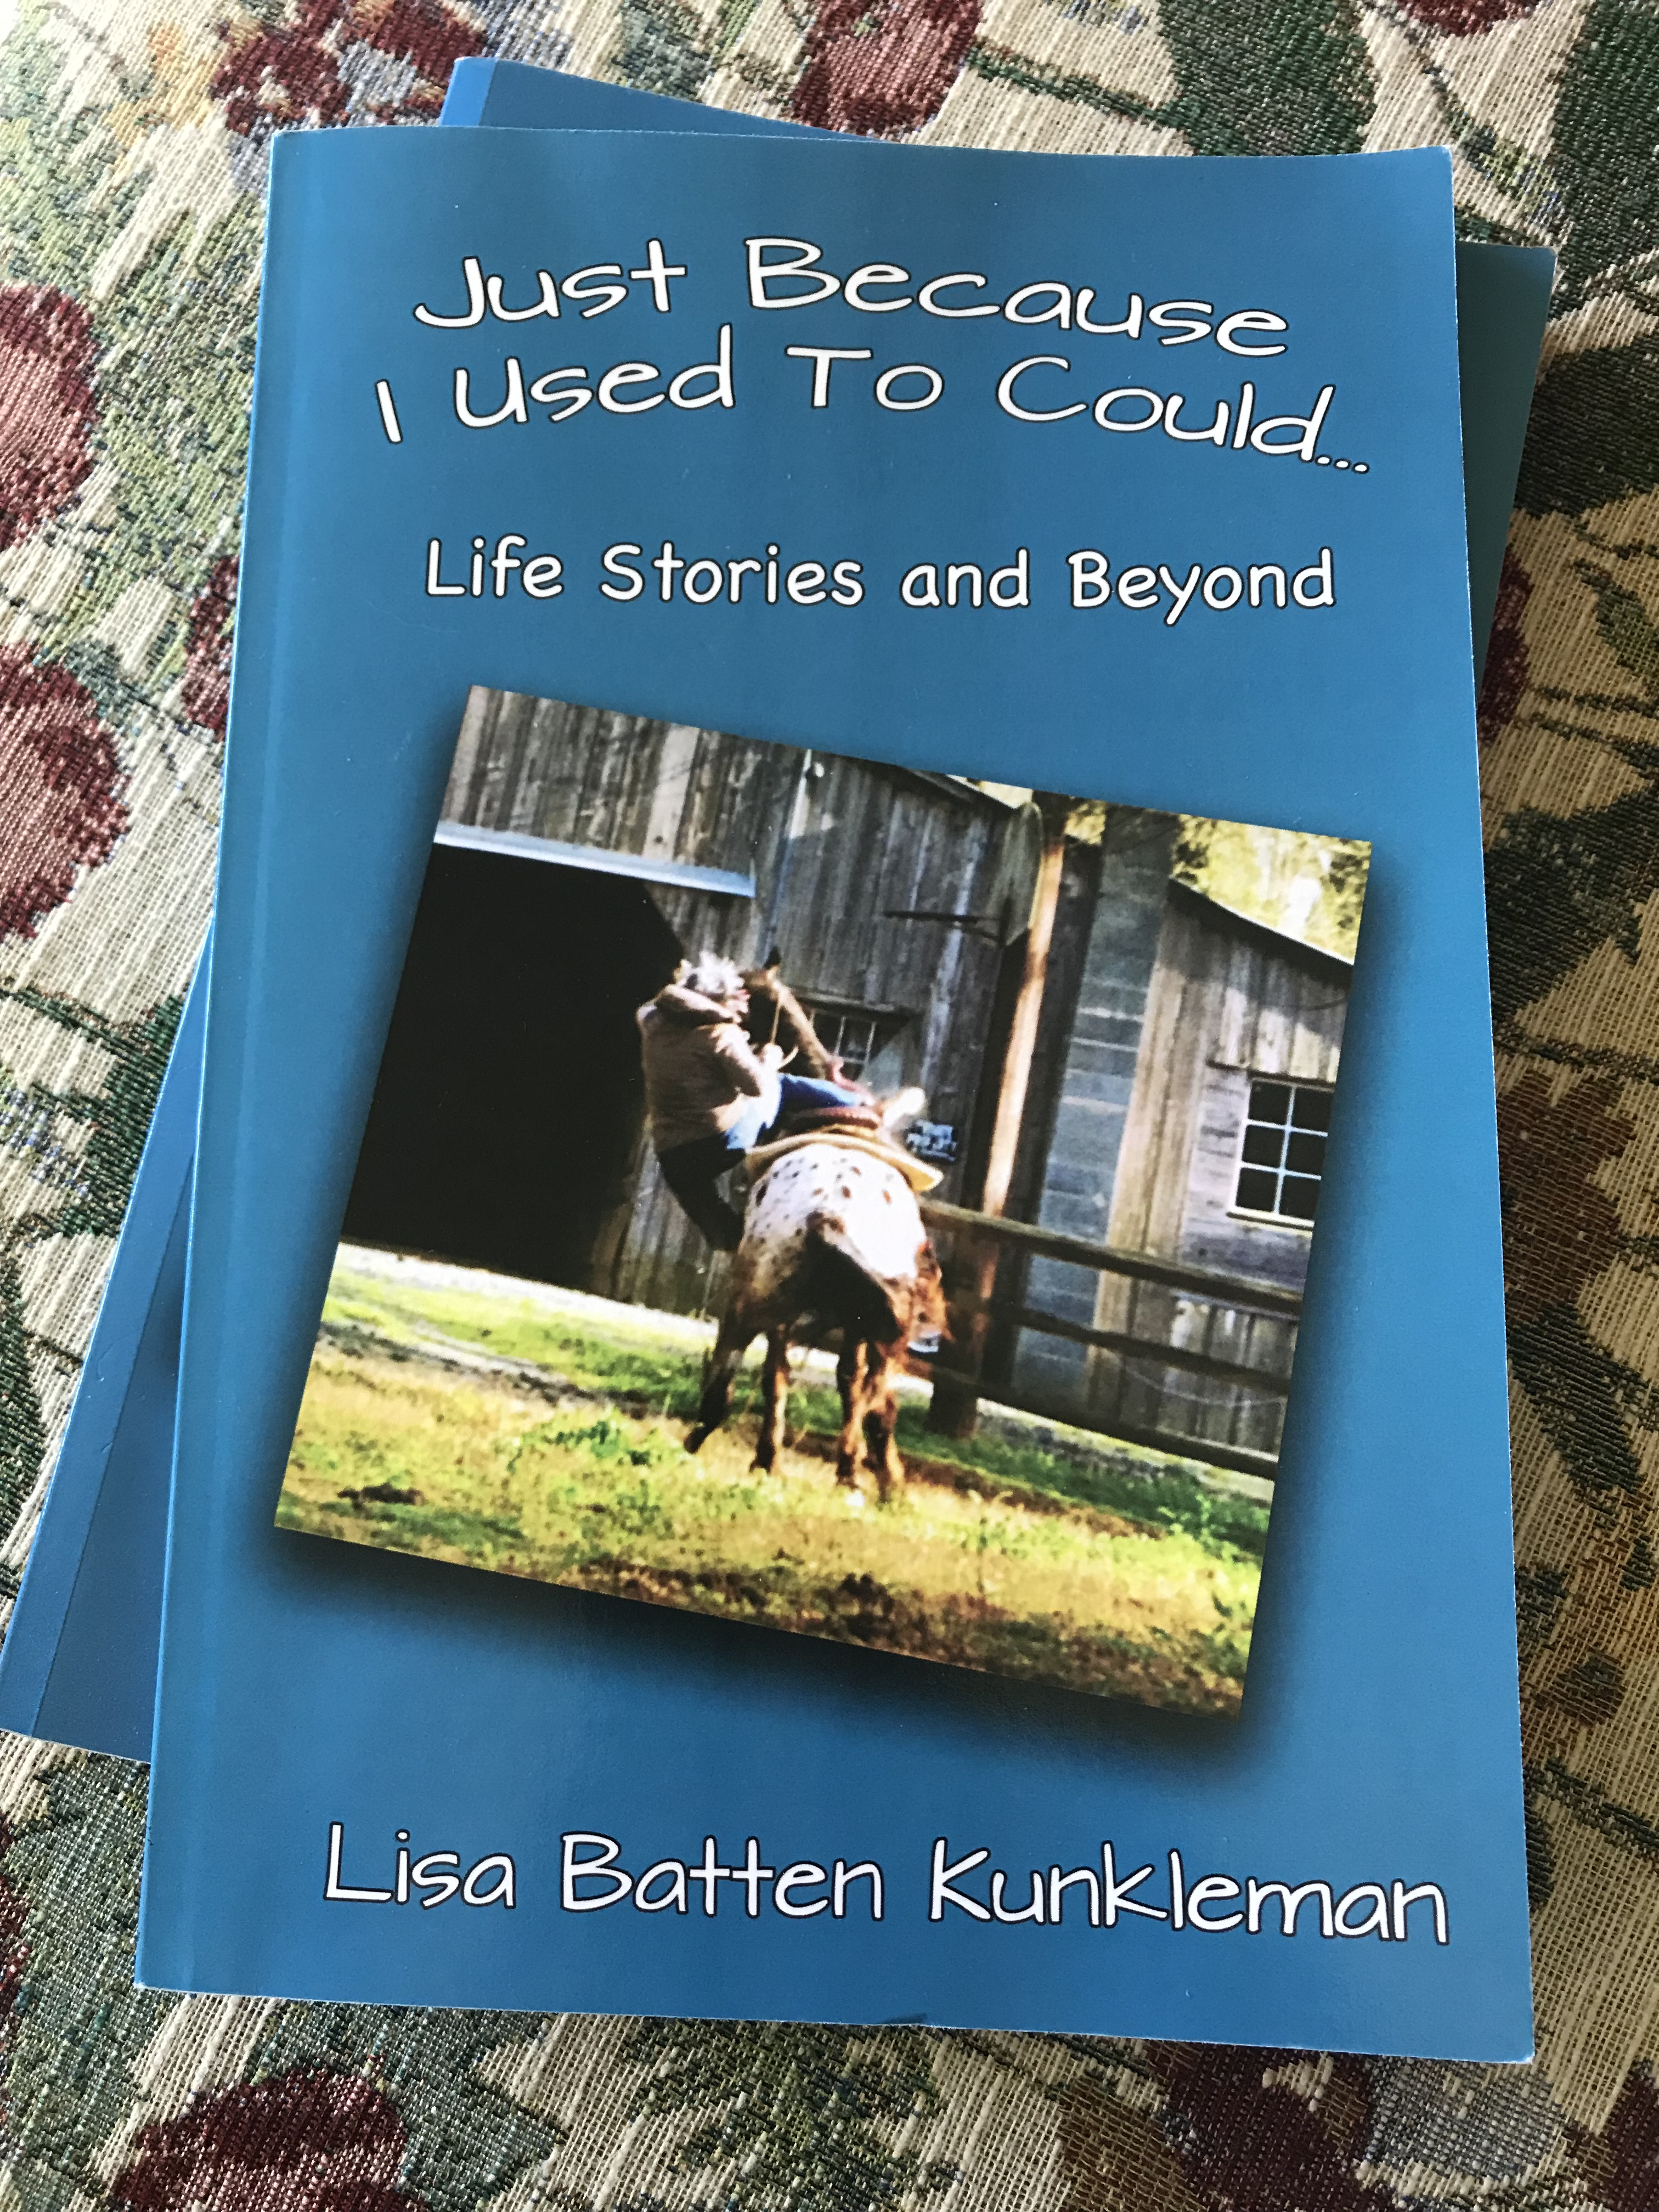 Check out my book. Just Because I Used to Could Step into the ever-changing life of a busy southern woman as she recounts day-to-day living with humor and vivid detail. As a former guidance counselor turned writer, Lisa Batten Kunkleman's book Just Because I Used to Could…Life Stories and Beyond